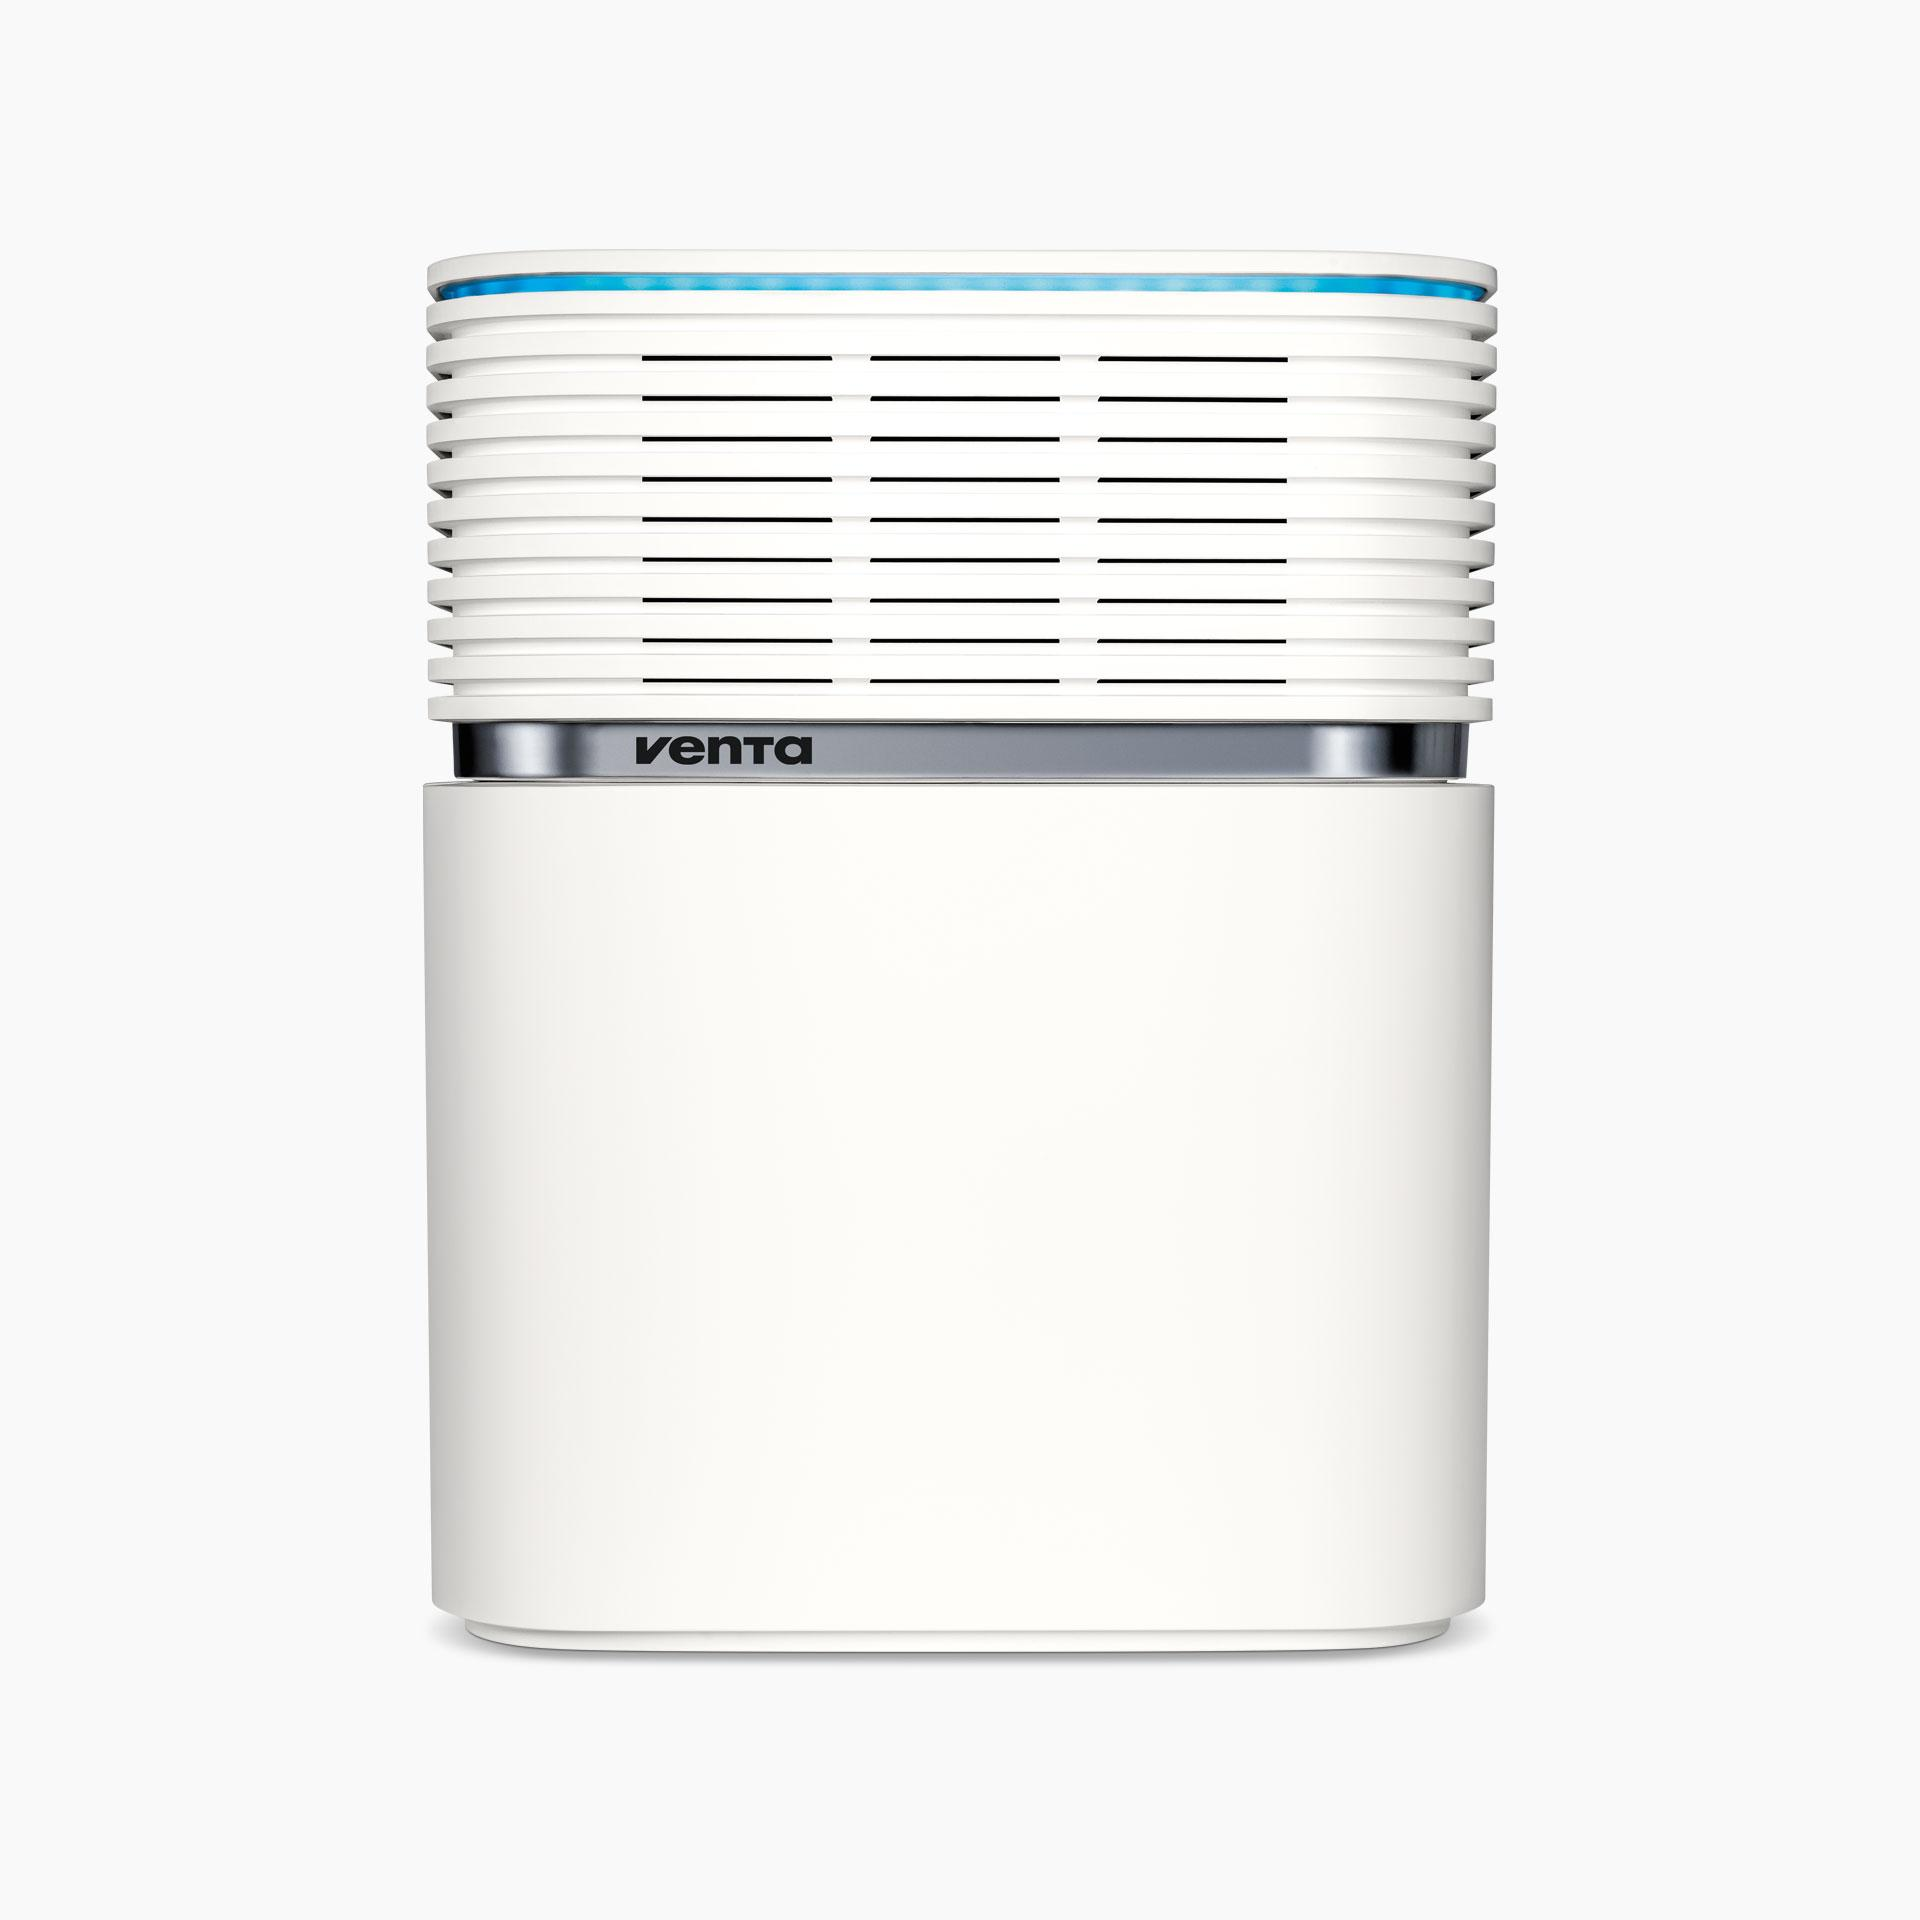 Lw74wh venta aerostyle white blue front face